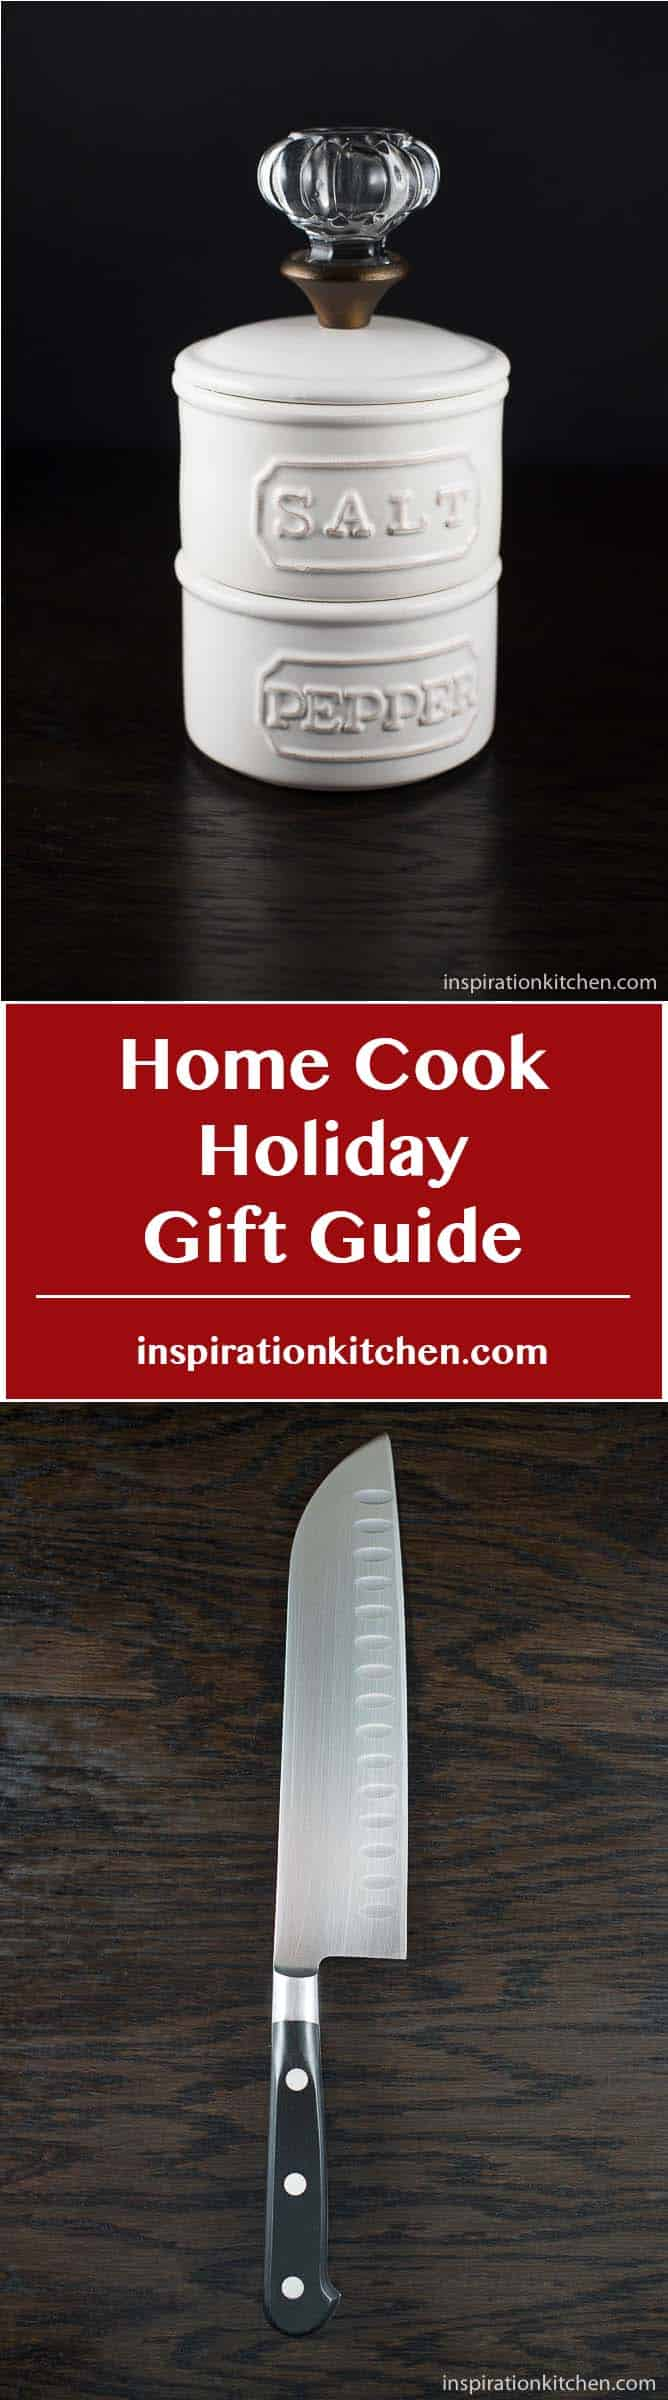 Home Cook Holiday Gift Guide - inspirationkitchen.com